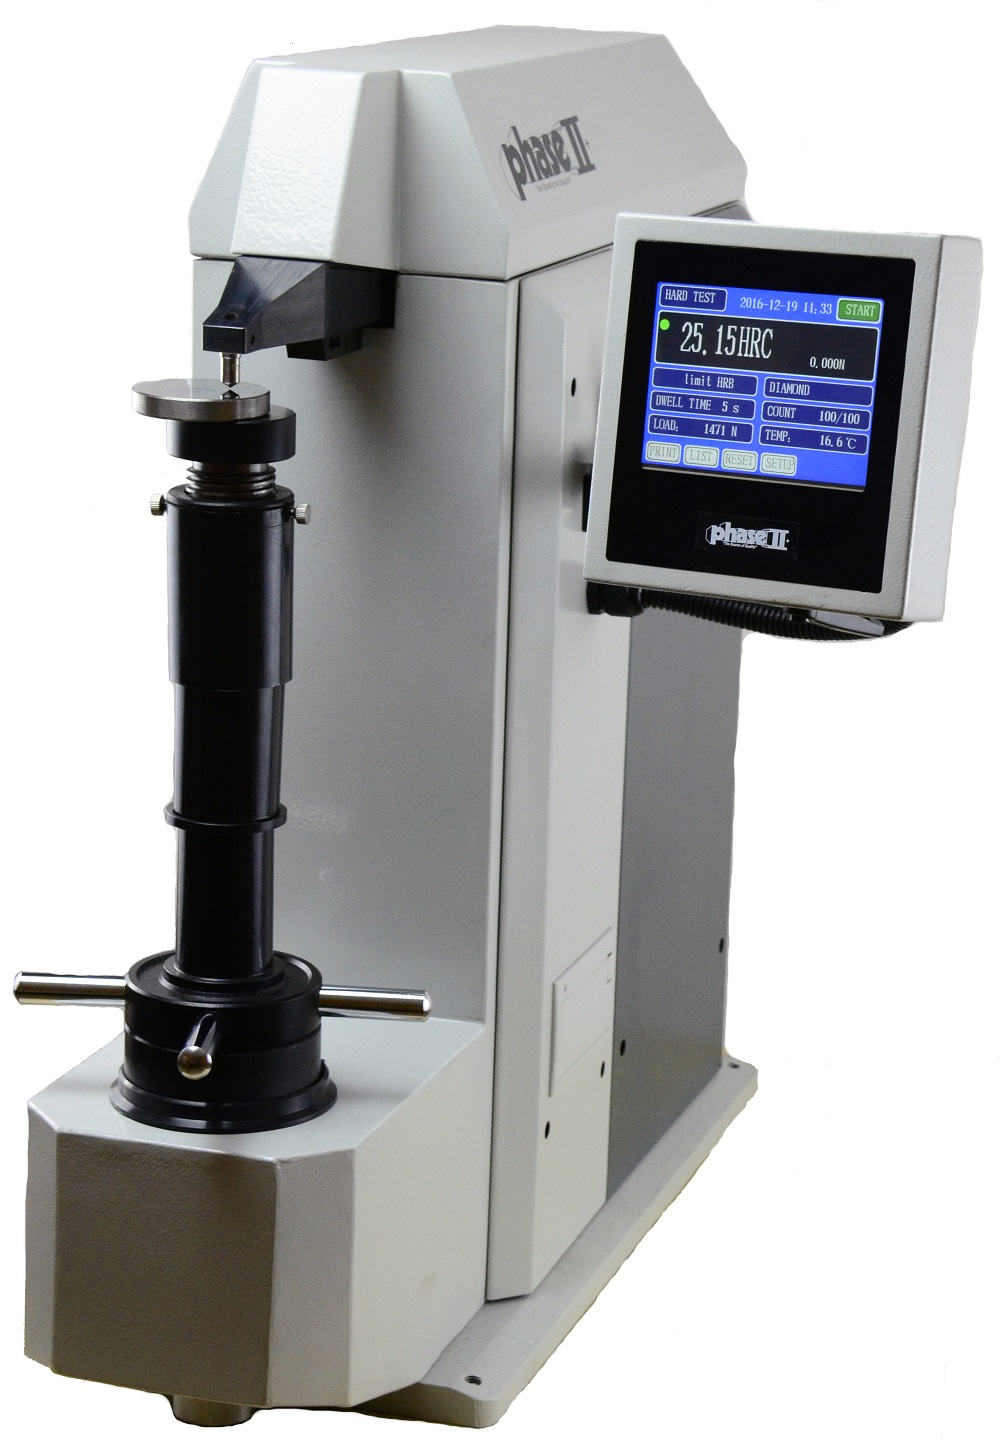 900-346 Digital Superficial Rockwell Hardness Tester